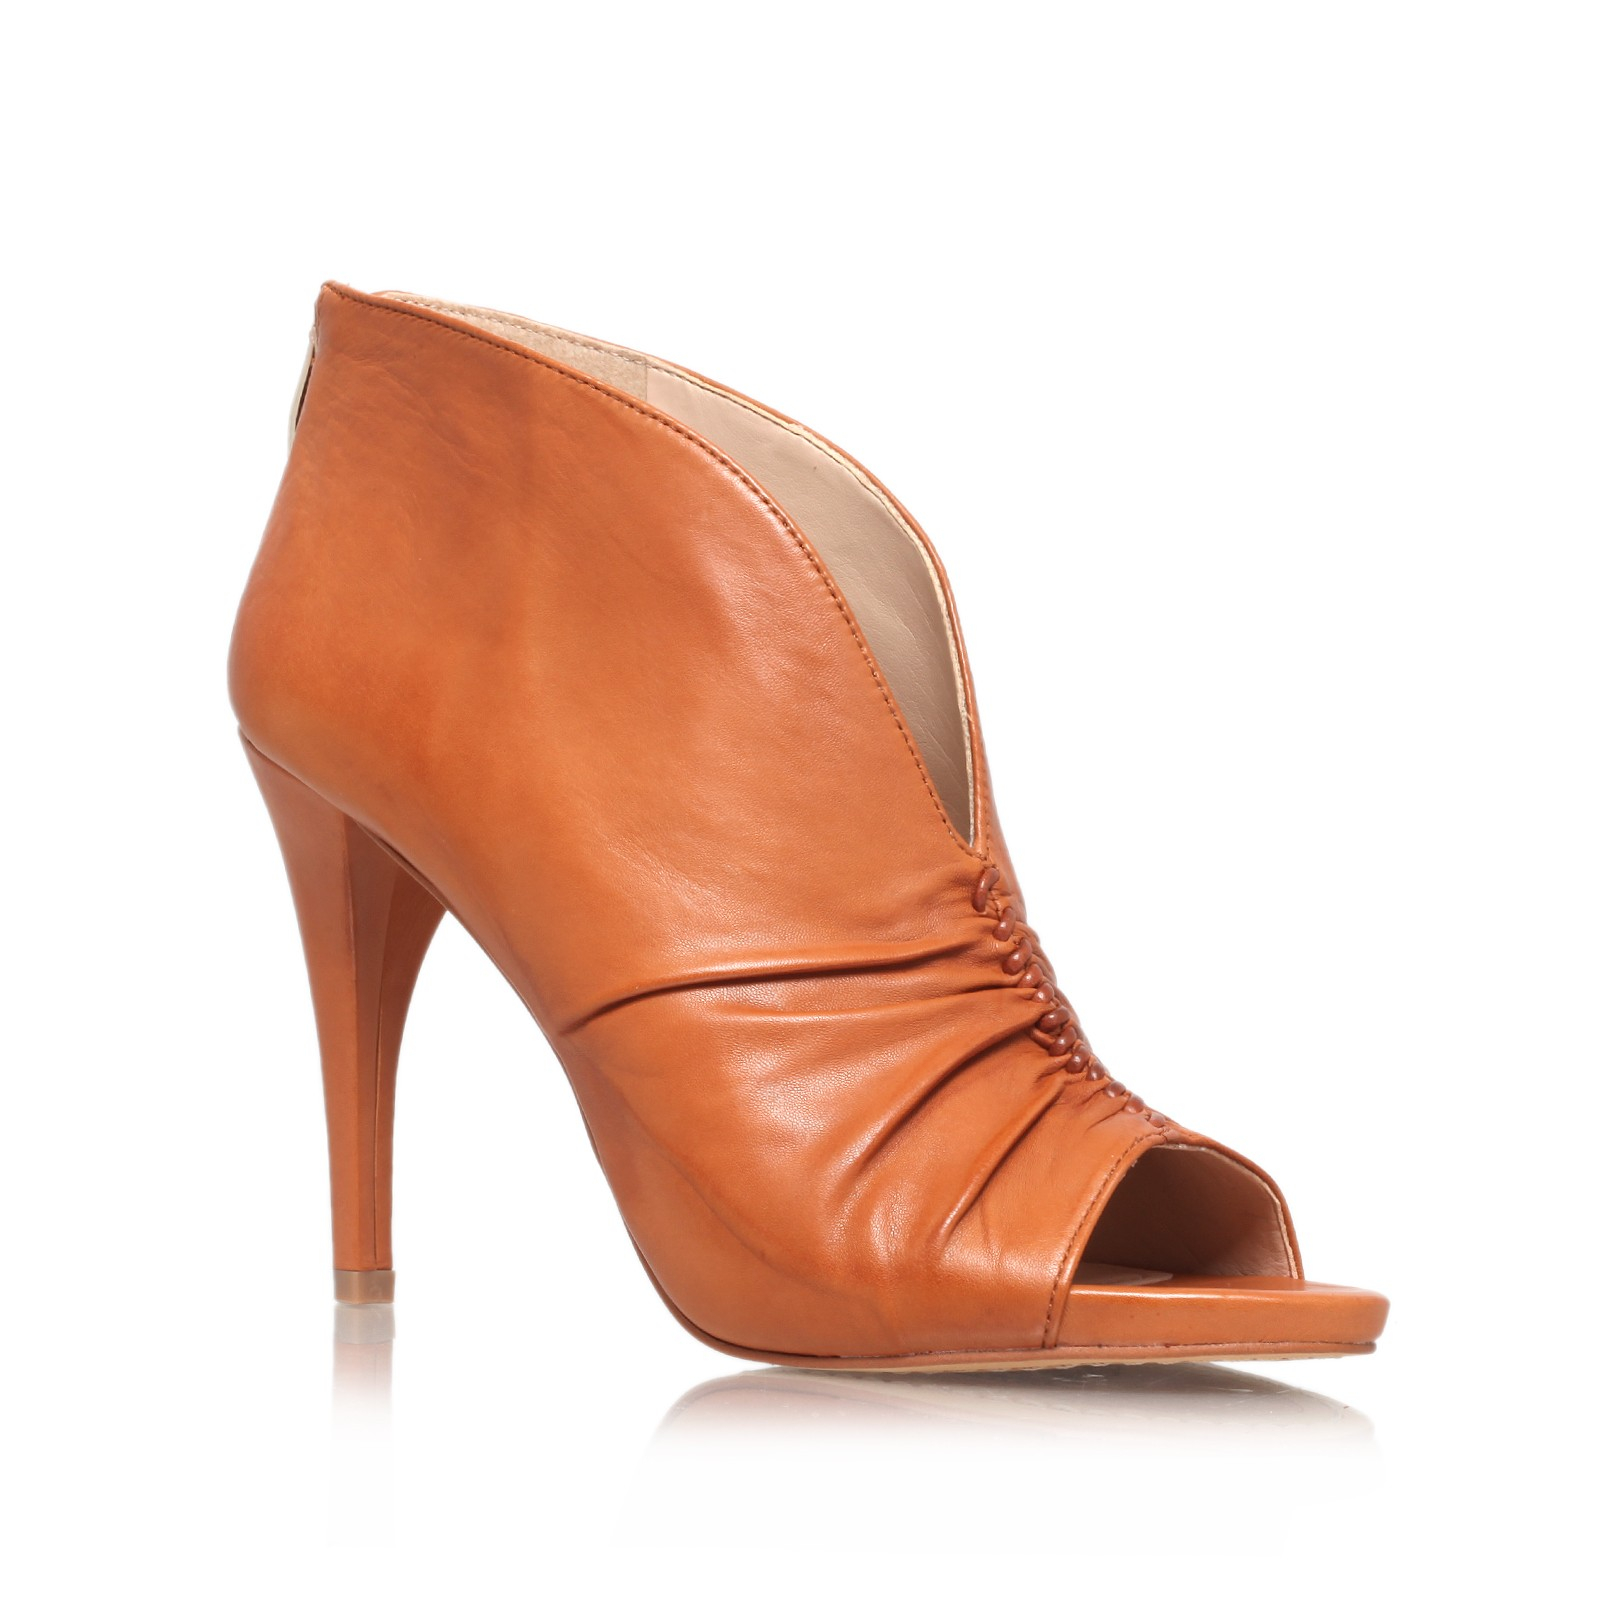 vince camuto Shoes. Email to friends Share on Facebook - opens in a new window or tab Share on Twitter - opens in a new window or tab Share on Pinterest - opens in a new window or tab | Add to watch list. Seller information. popsicles % Positive feedback. Save this seller. Contact seller.